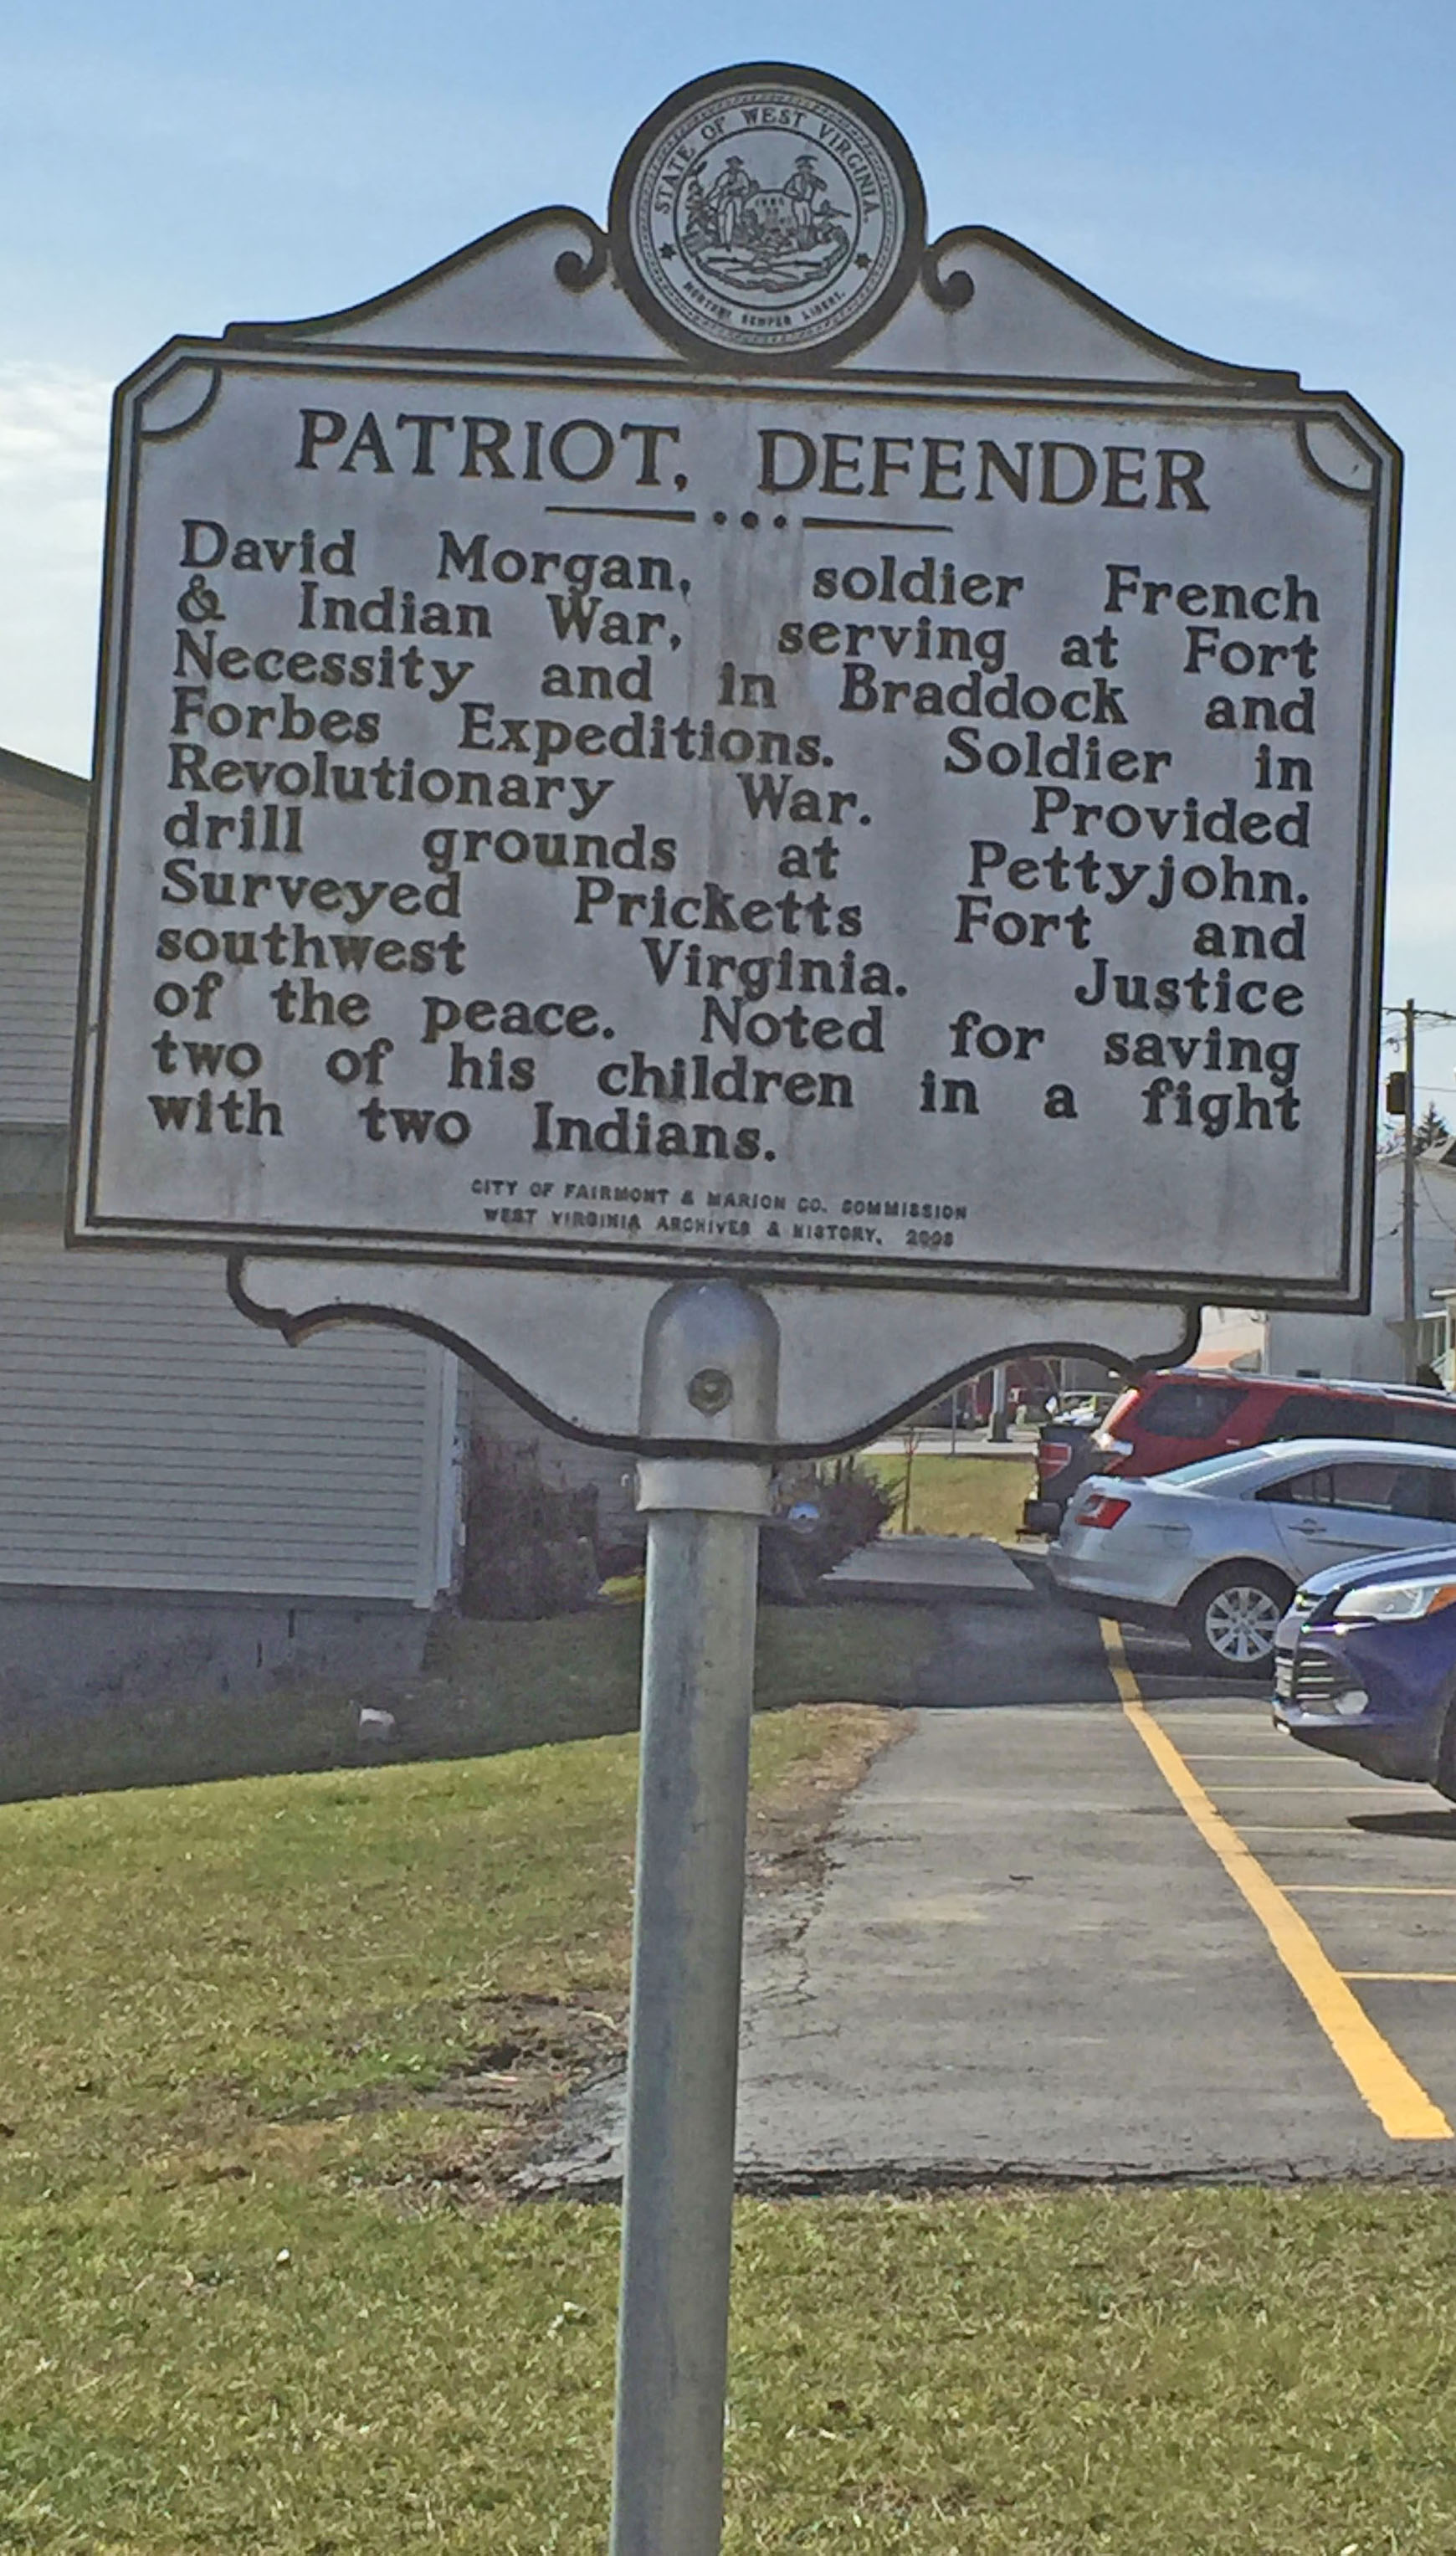 Patriot Defender - David Morgan historical marker. Photo by Juanita DeBerry Feb. 18, 2017